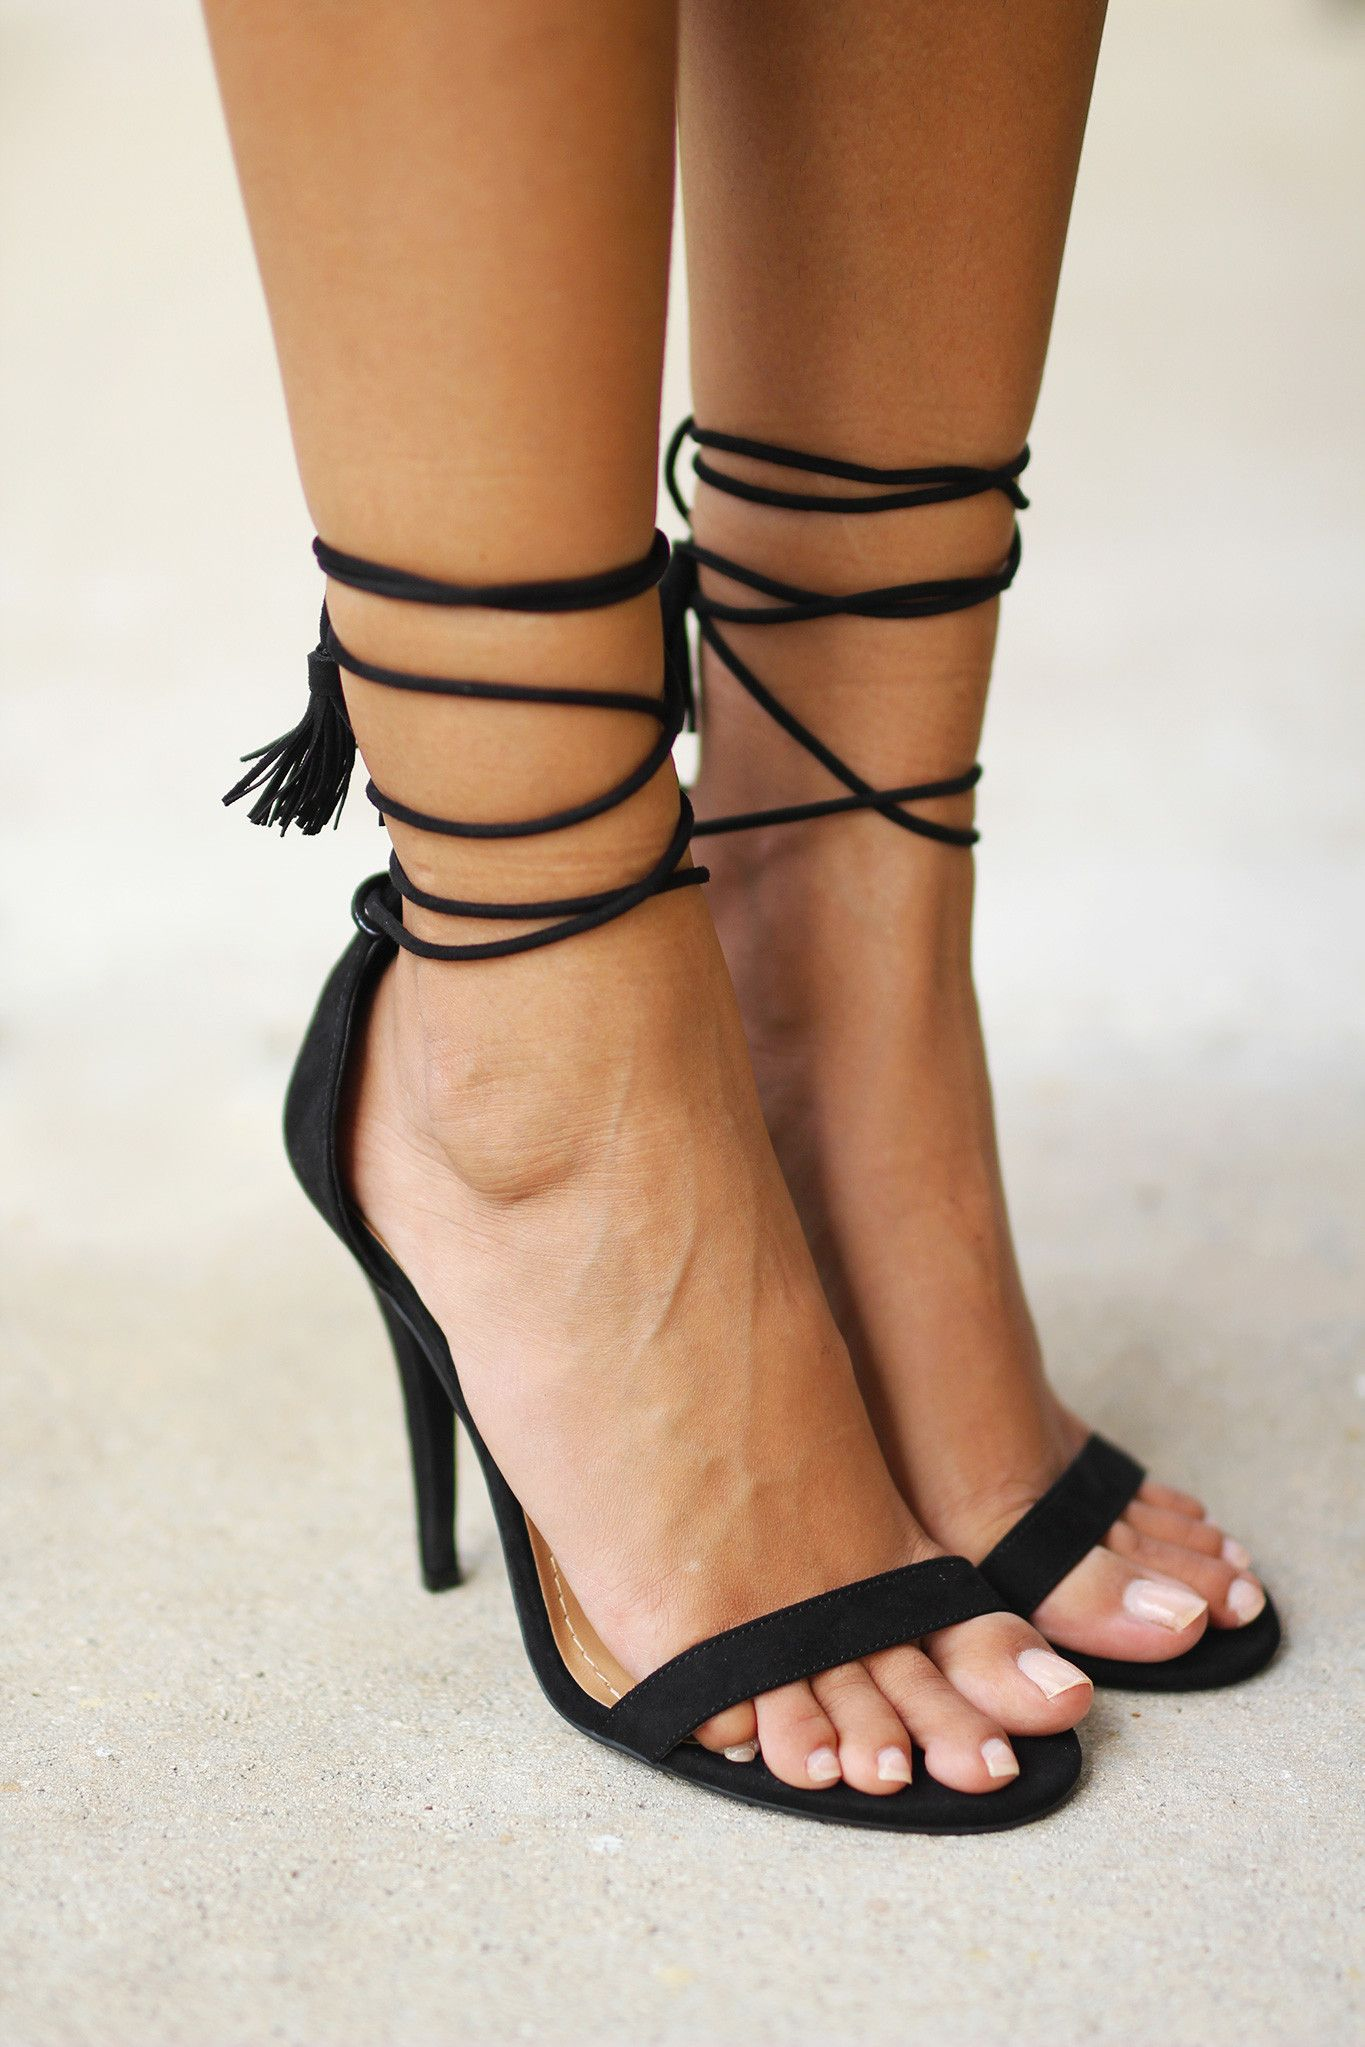 84da733b4f5f Say hello to your new fave shoes! Our new Black Strappy Heels with Tassels  are a must have piece in every girl s closet. They are the perfect basic  heels ...